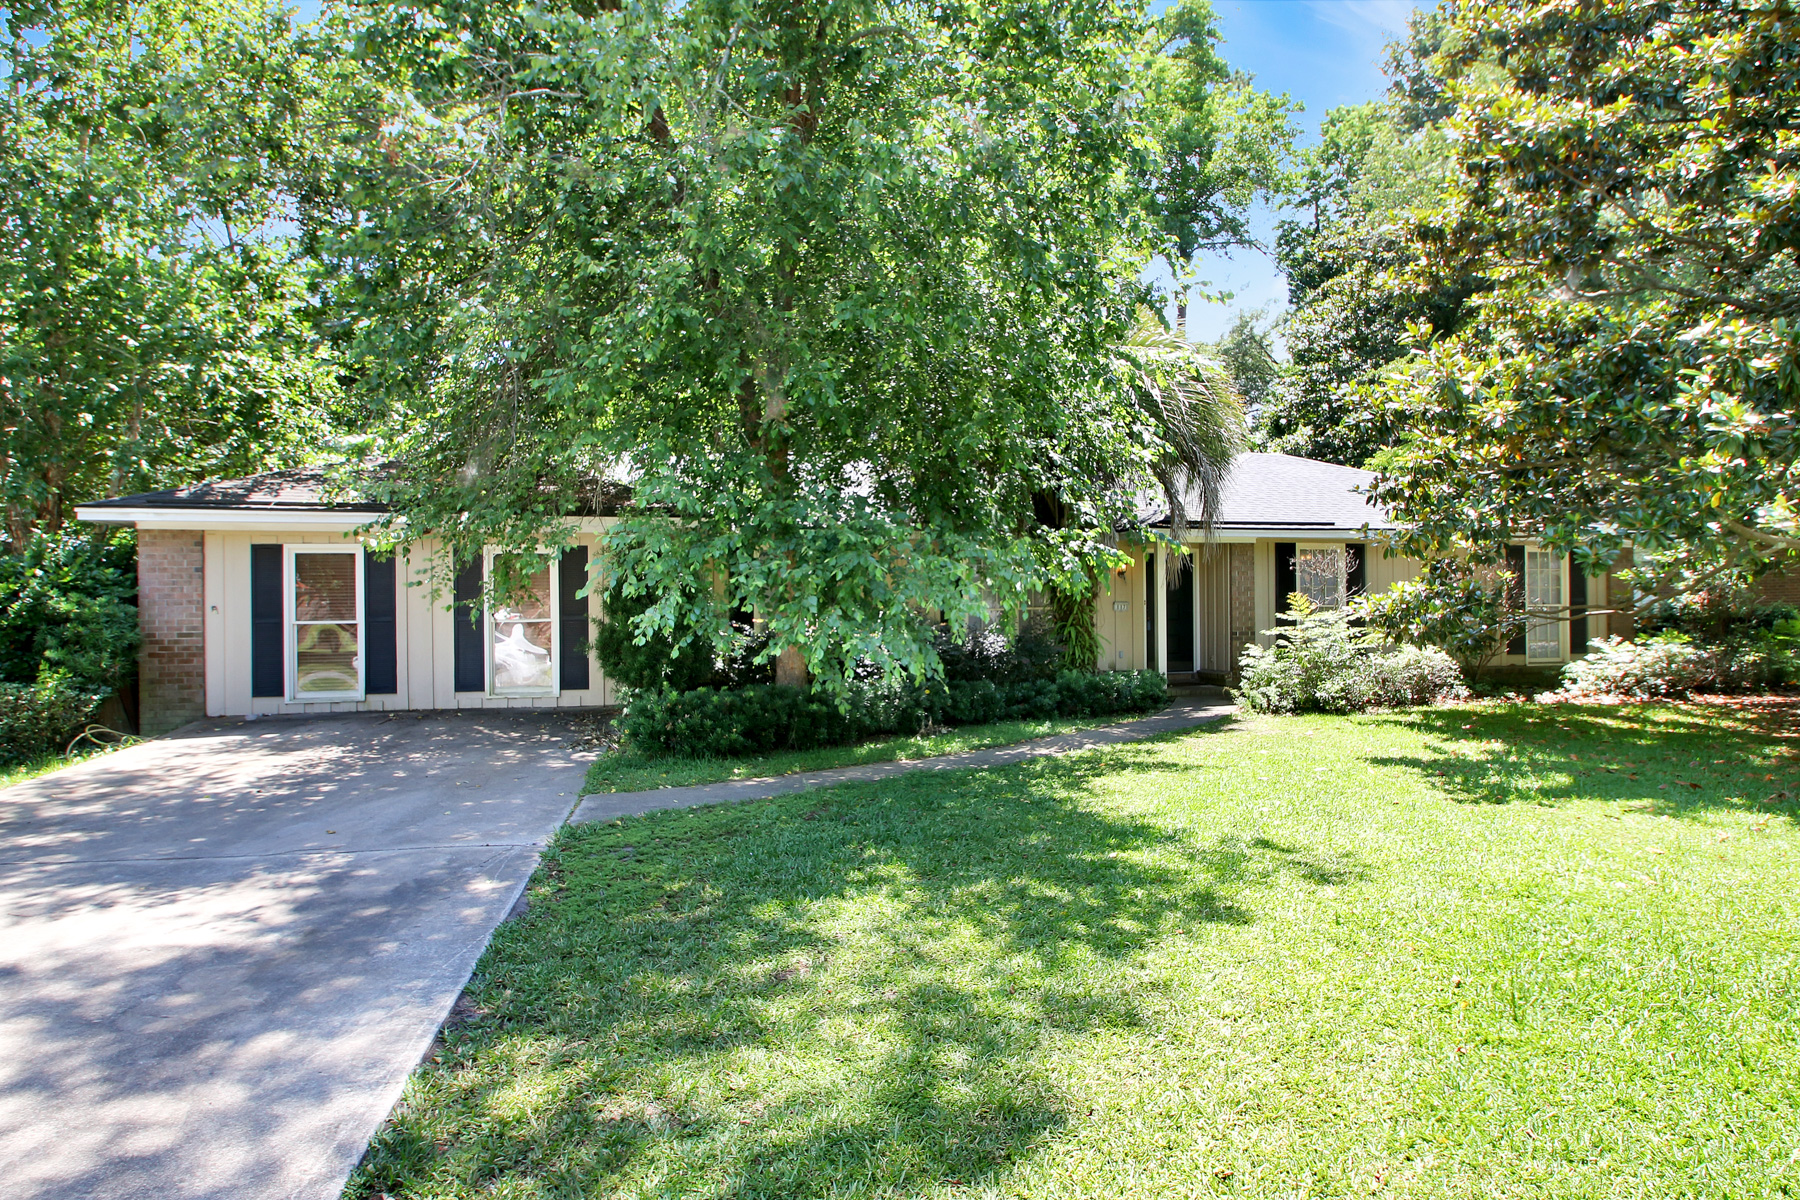 Single Family Home for Sale at 117 Chatsworth Road 117 Chatsworth Rd Savannah, Georgia 31410 United States